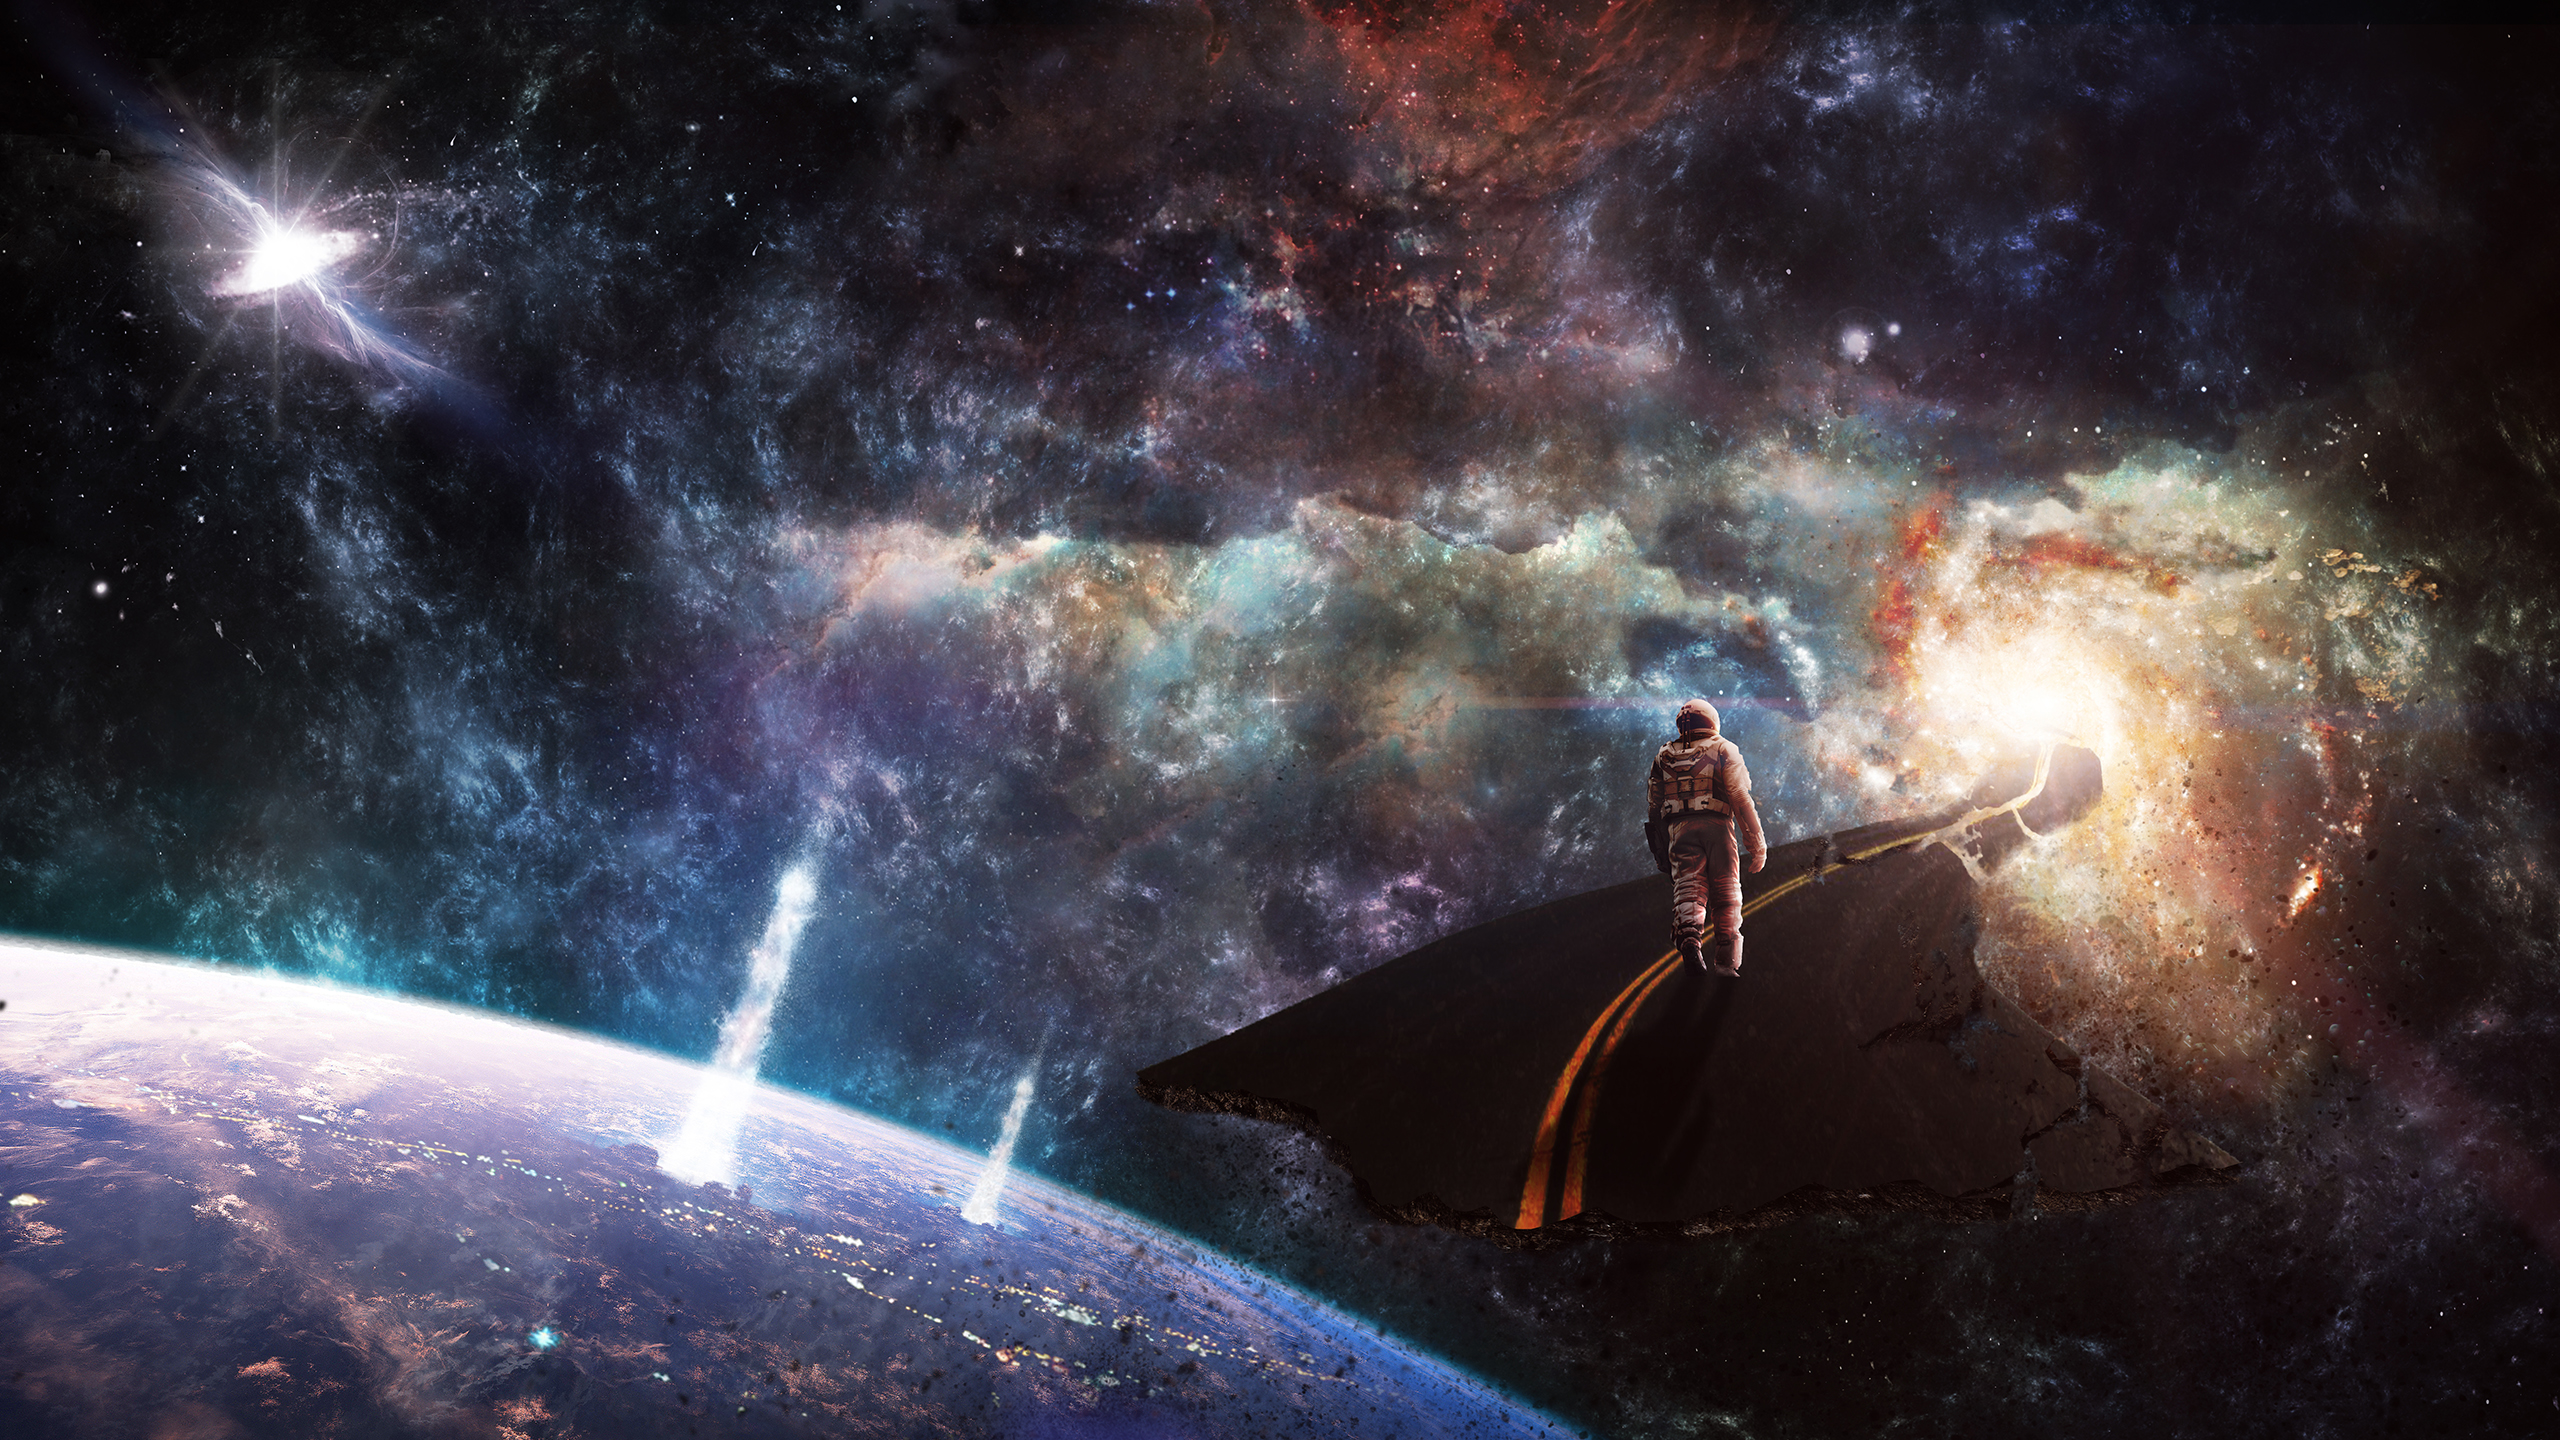 The dream hd wallpaper background image 2560x1440 id - Space wallpaper road ...